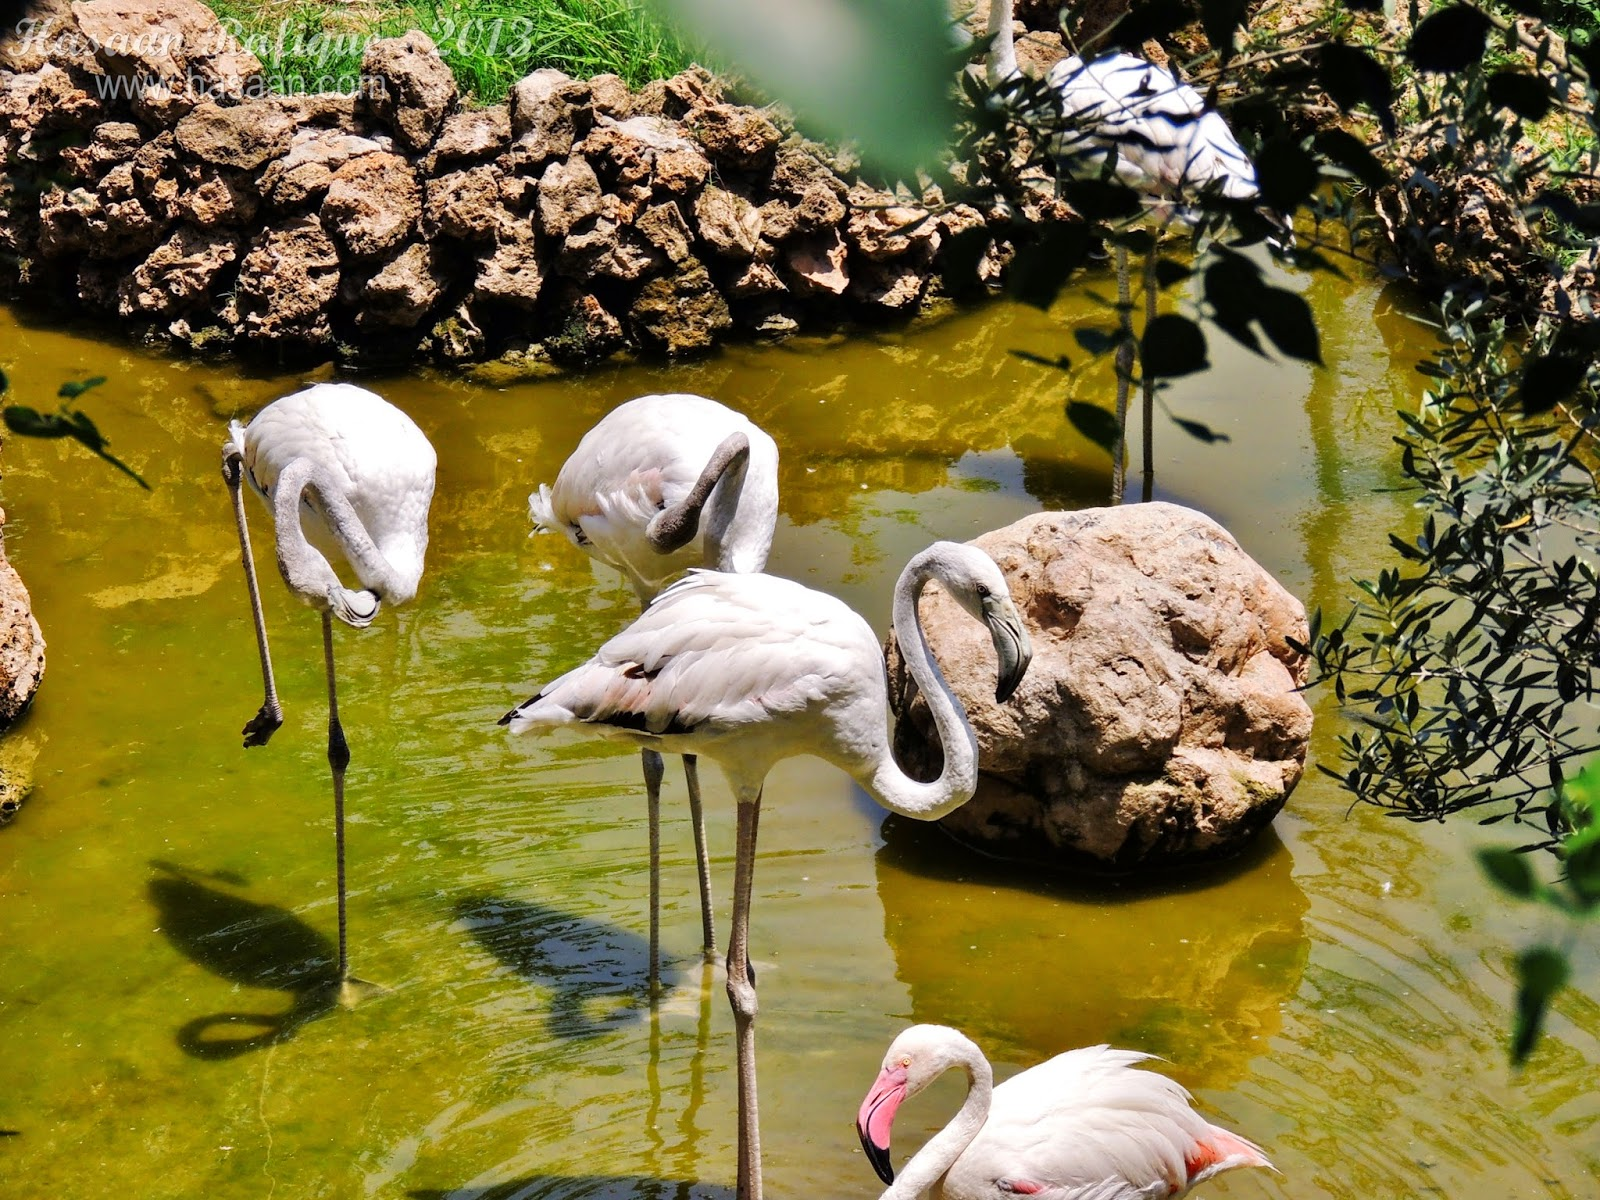 Several flamingoes with some standing in their classic one-legged position.